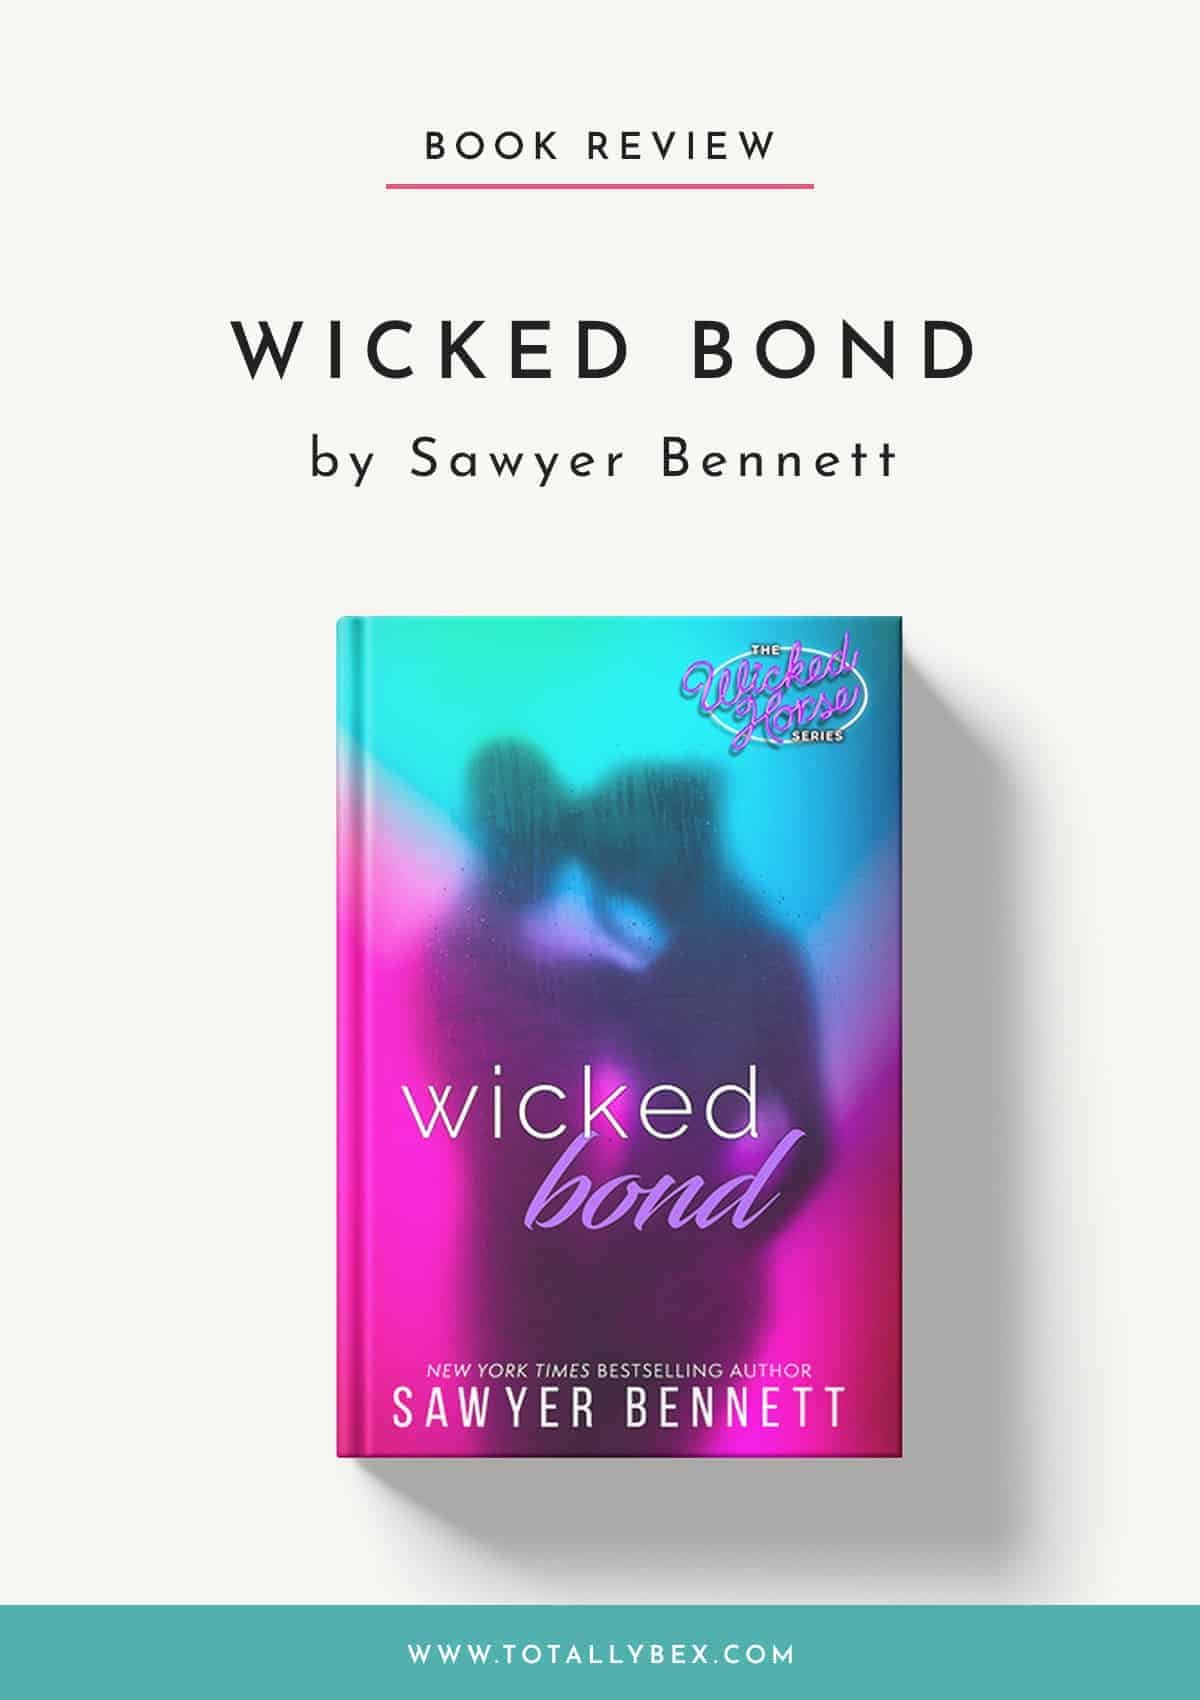 Wicked Bond by Sawyer Bennett-Book Review